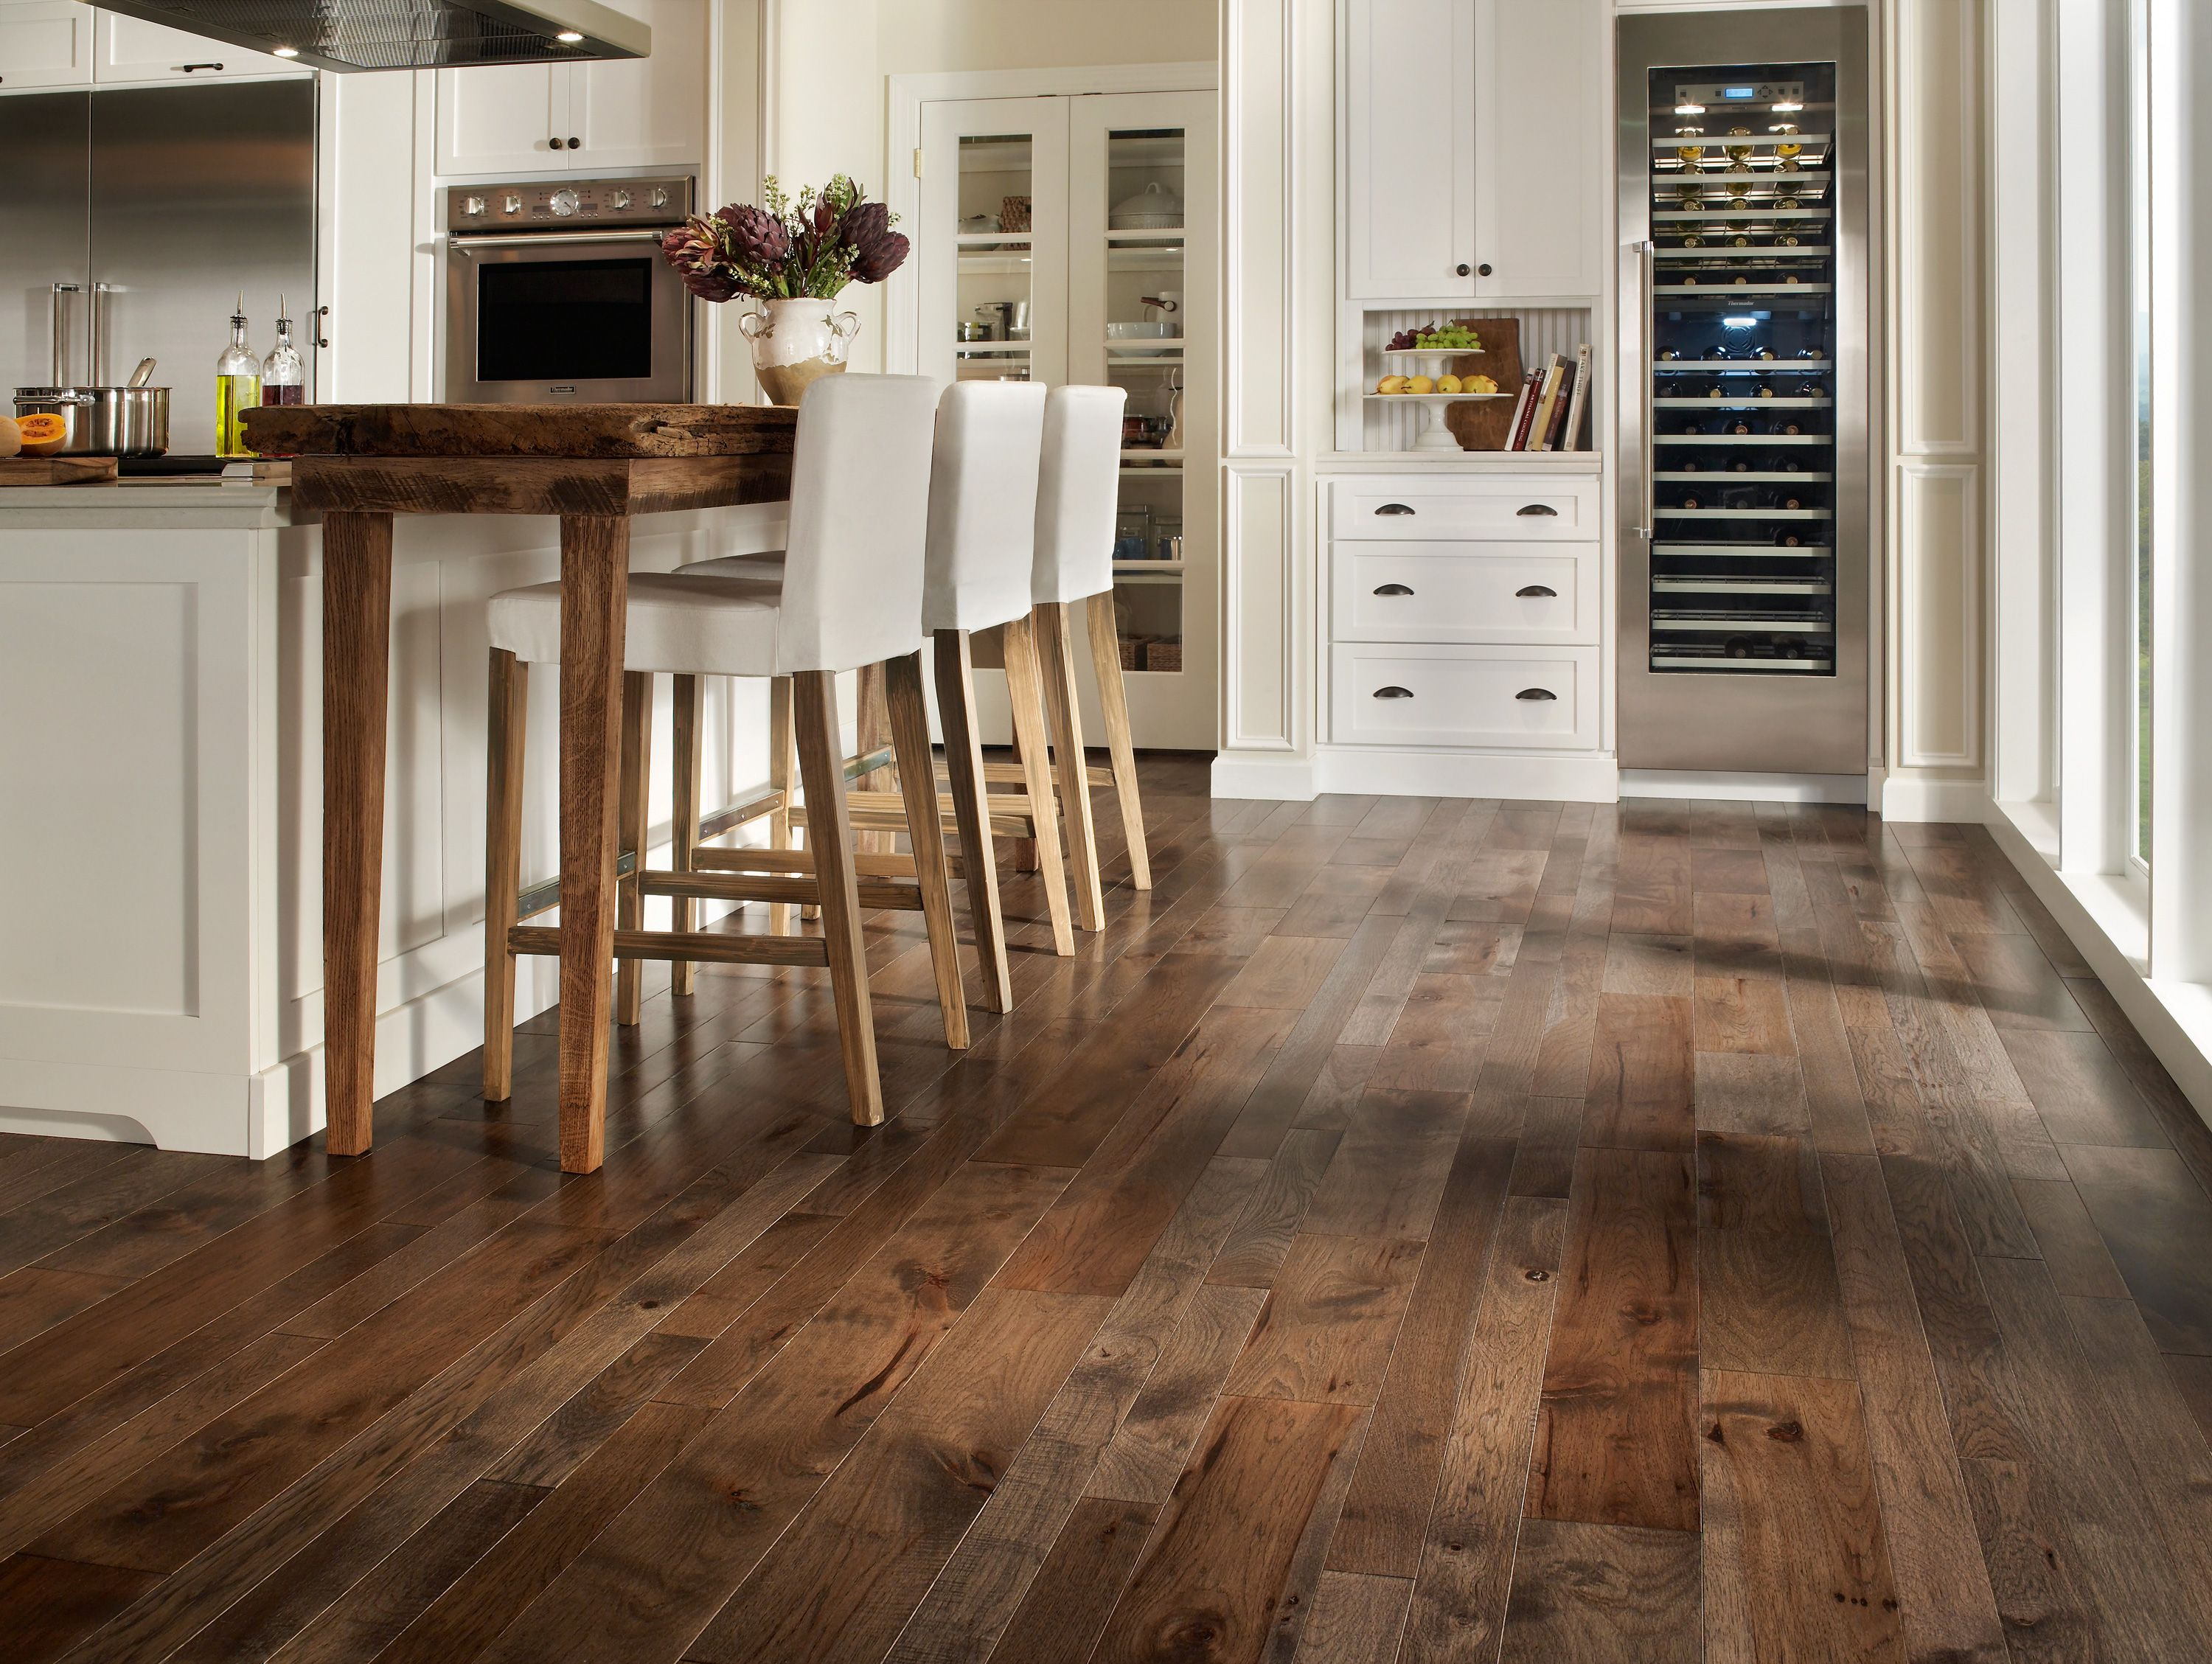 flooring best kitchen flooring Simple kitchen decorating design ideas using rustic solid dark brown wooden floors in kitchen including wooden white leather tall kitchen chair and white